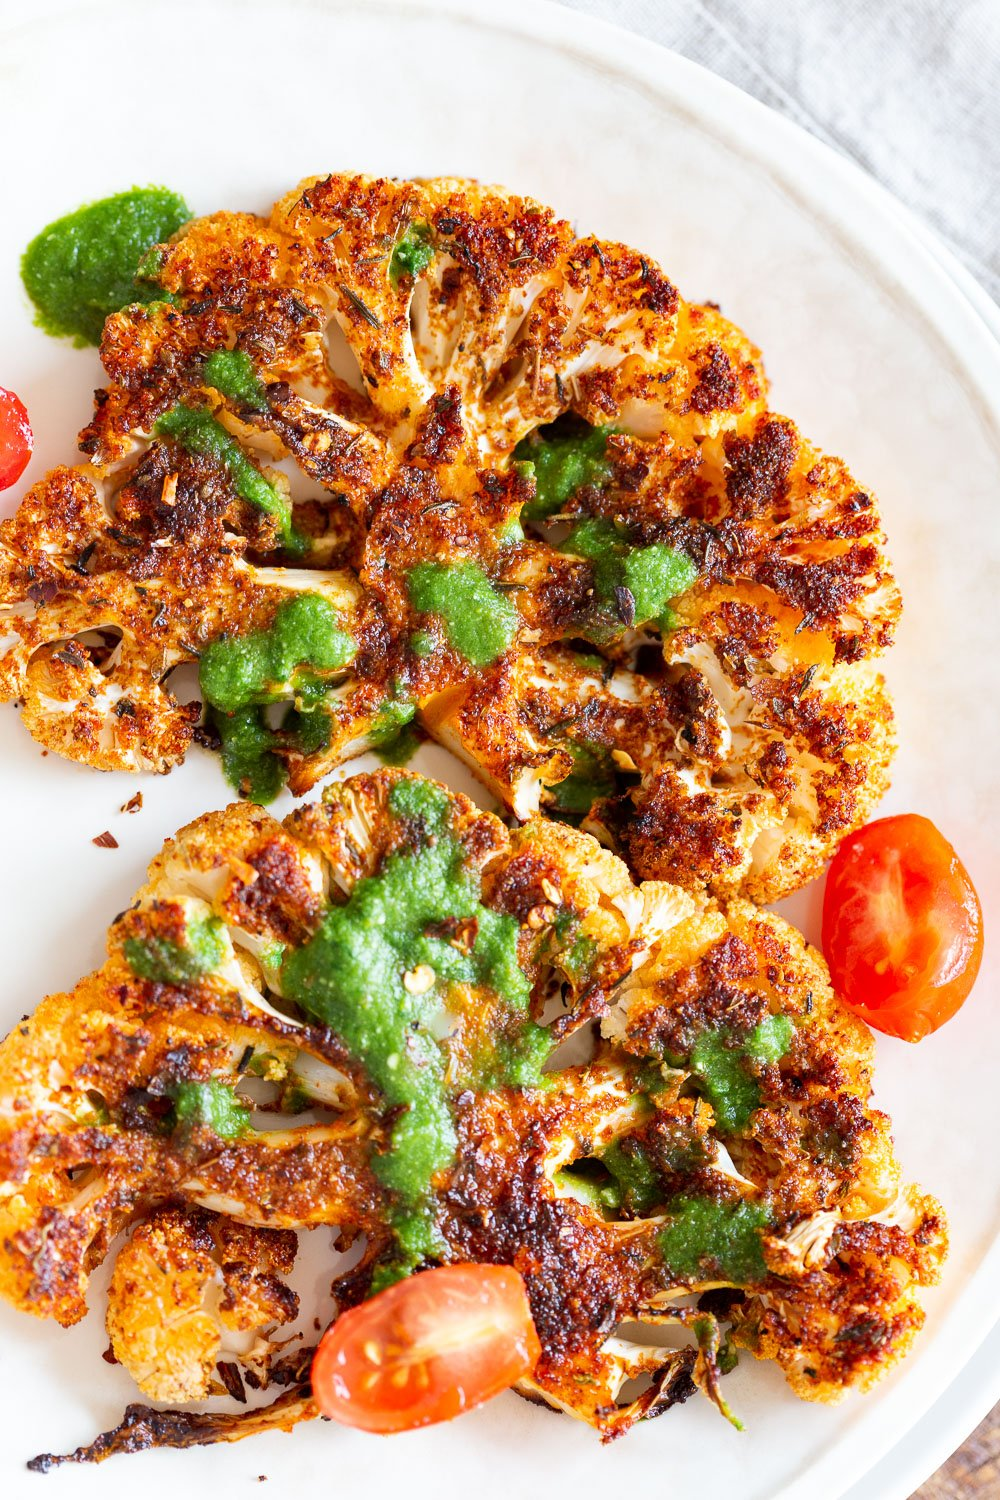 Vegan Cajun Roasted Cauliflower Steaks with Chimichurri Sauce. 30 Mins , Super Flavorful Slice into thick slices or just chop into florets to make this delicious Cajun Cauliflower. Serve with chimichurri or a cooling dressing. #Vegan #Glutenfree #Soyfree #Nutfree #Recipe #veganRicha #cajunCauliflower